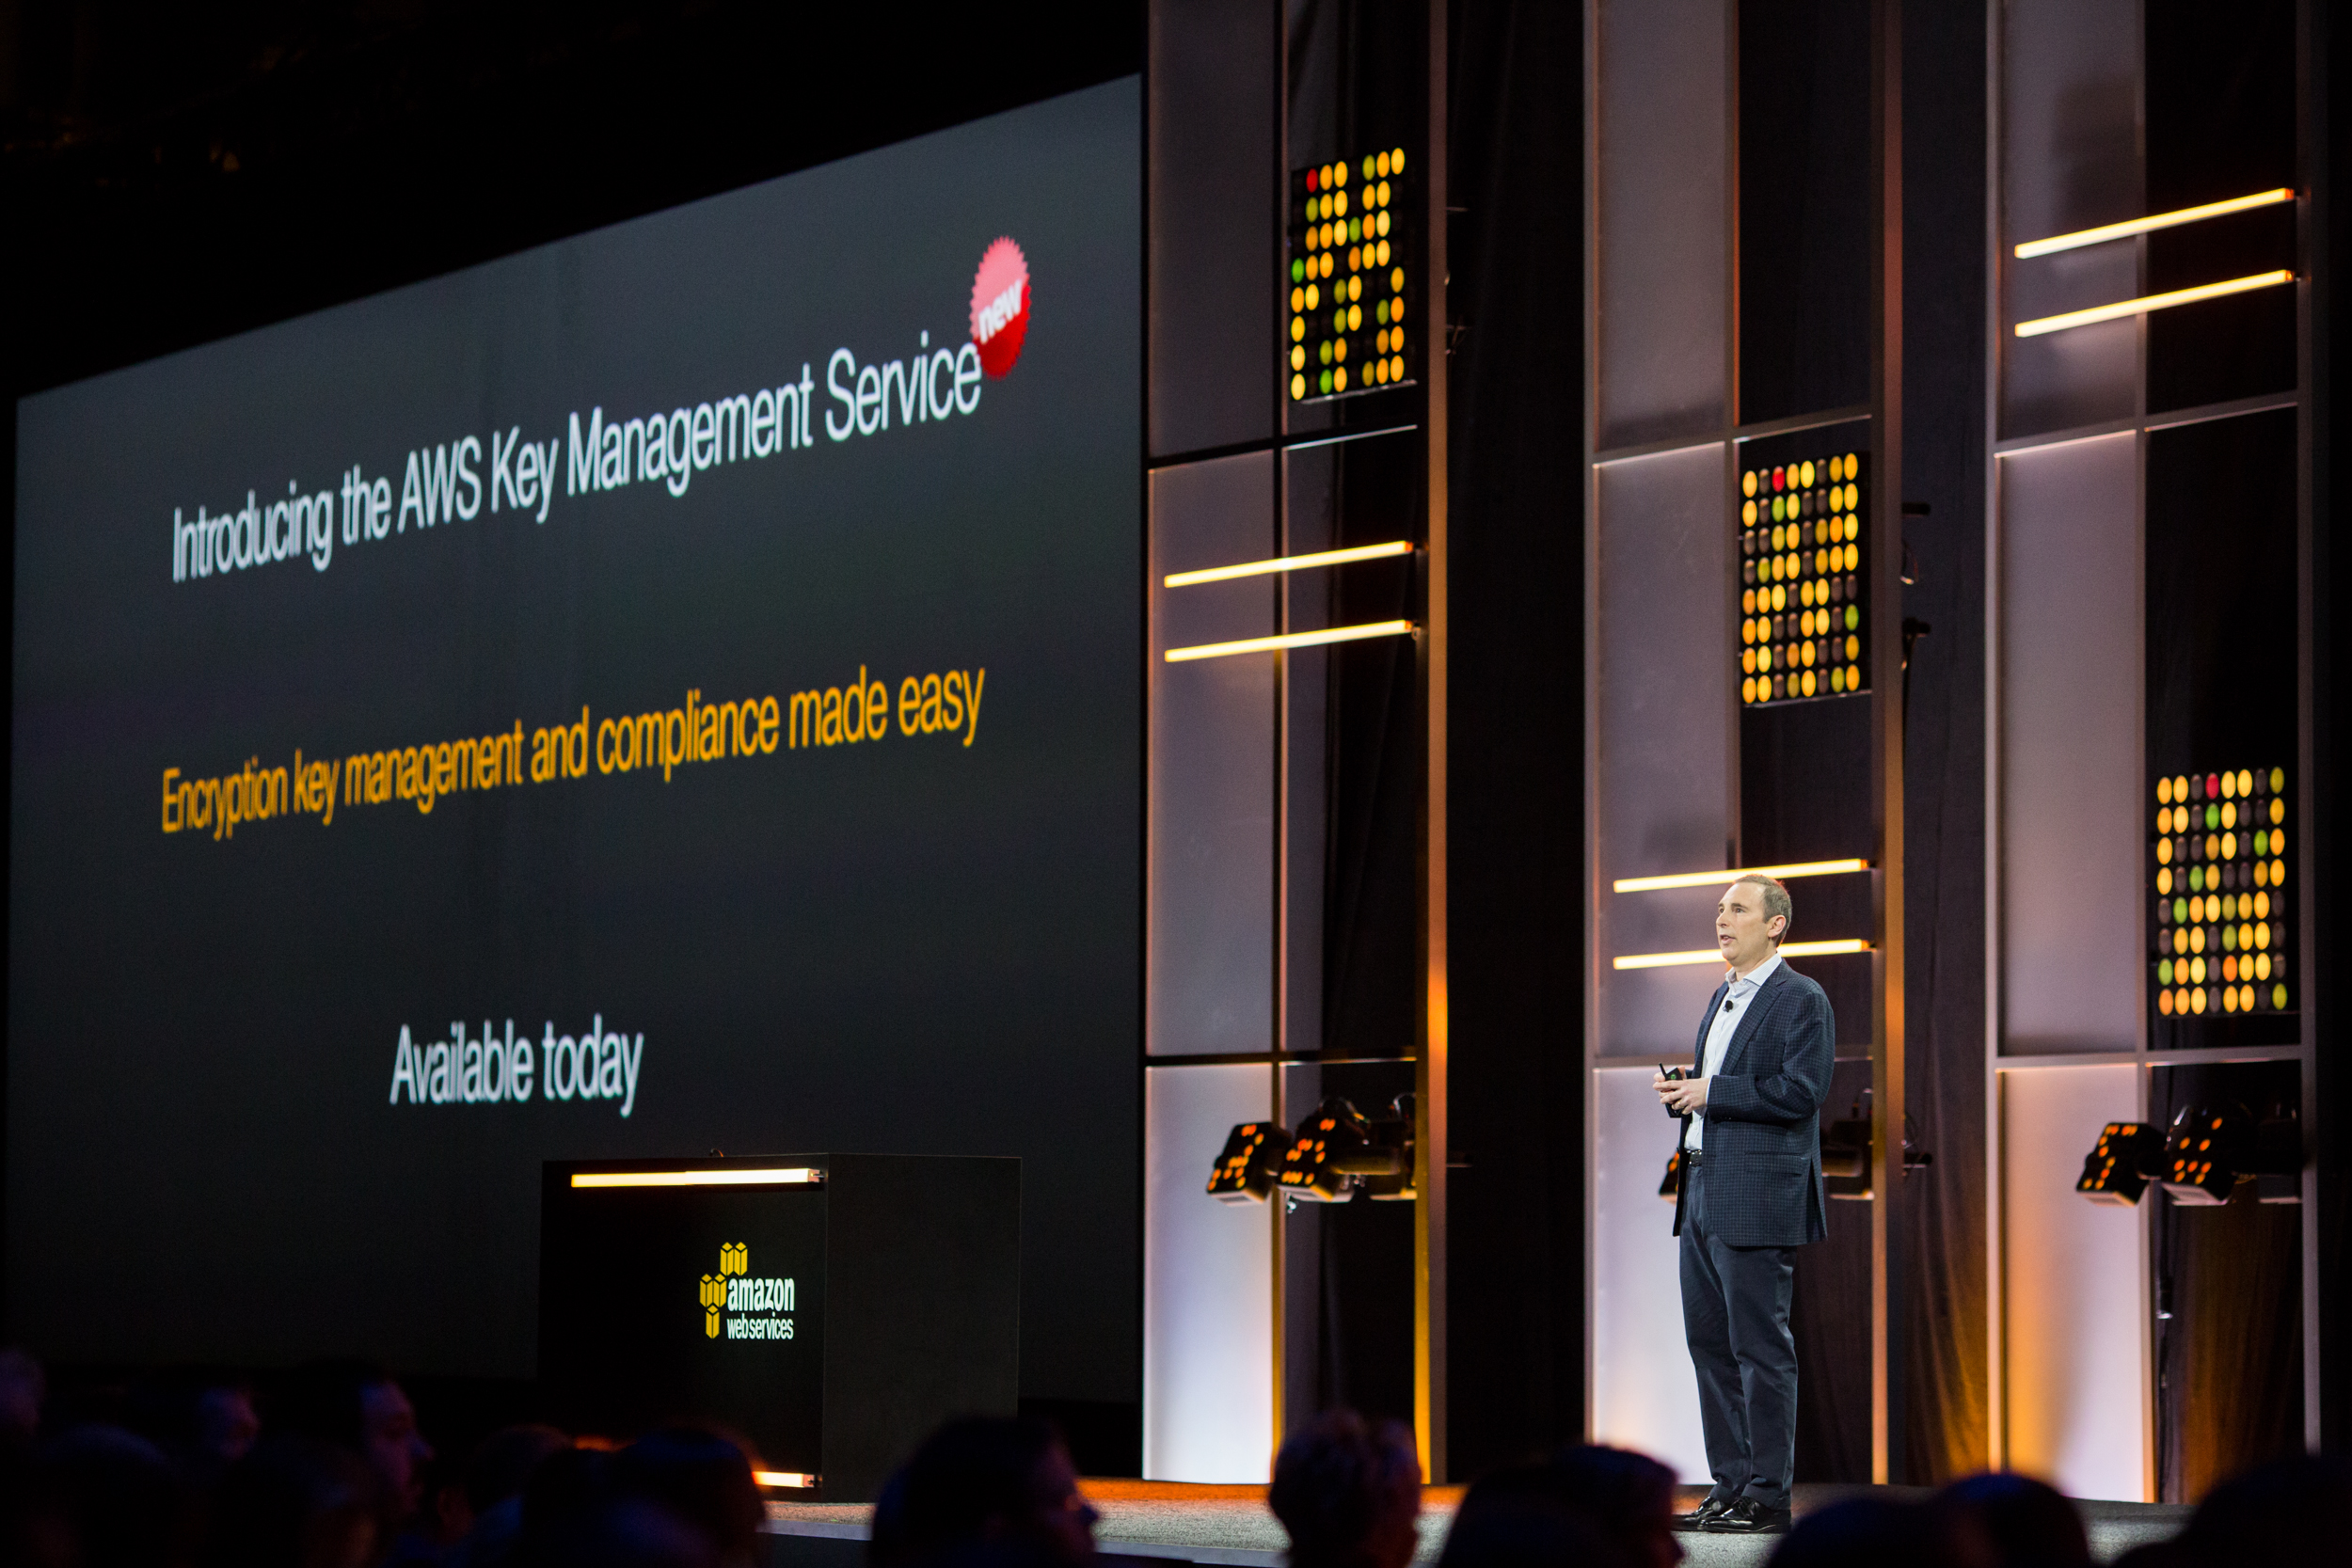 Amazon SVP Andy Jassy speaking at AWS Re:Invent 2014